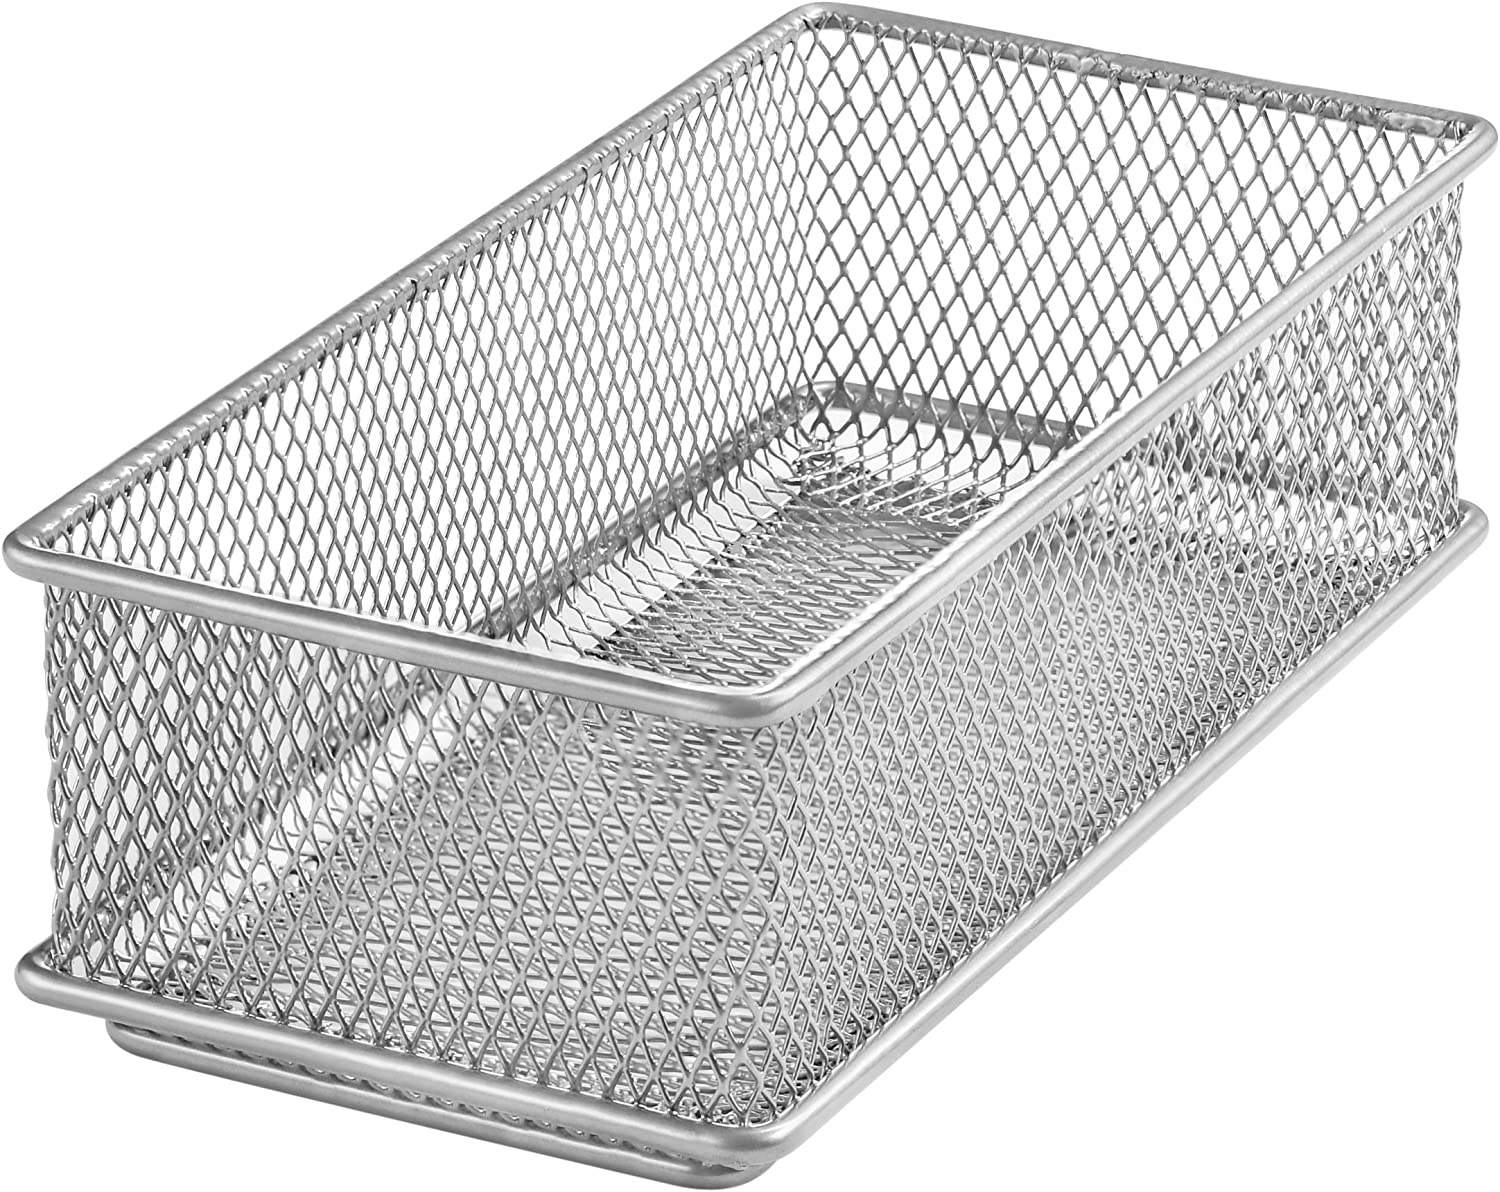 Ybm Home Silver Mesh Drawer Cabinet and or Shelf Organizer Bin, School Supply Holder Office Desktop Organizer Basket 1594 (3x6)